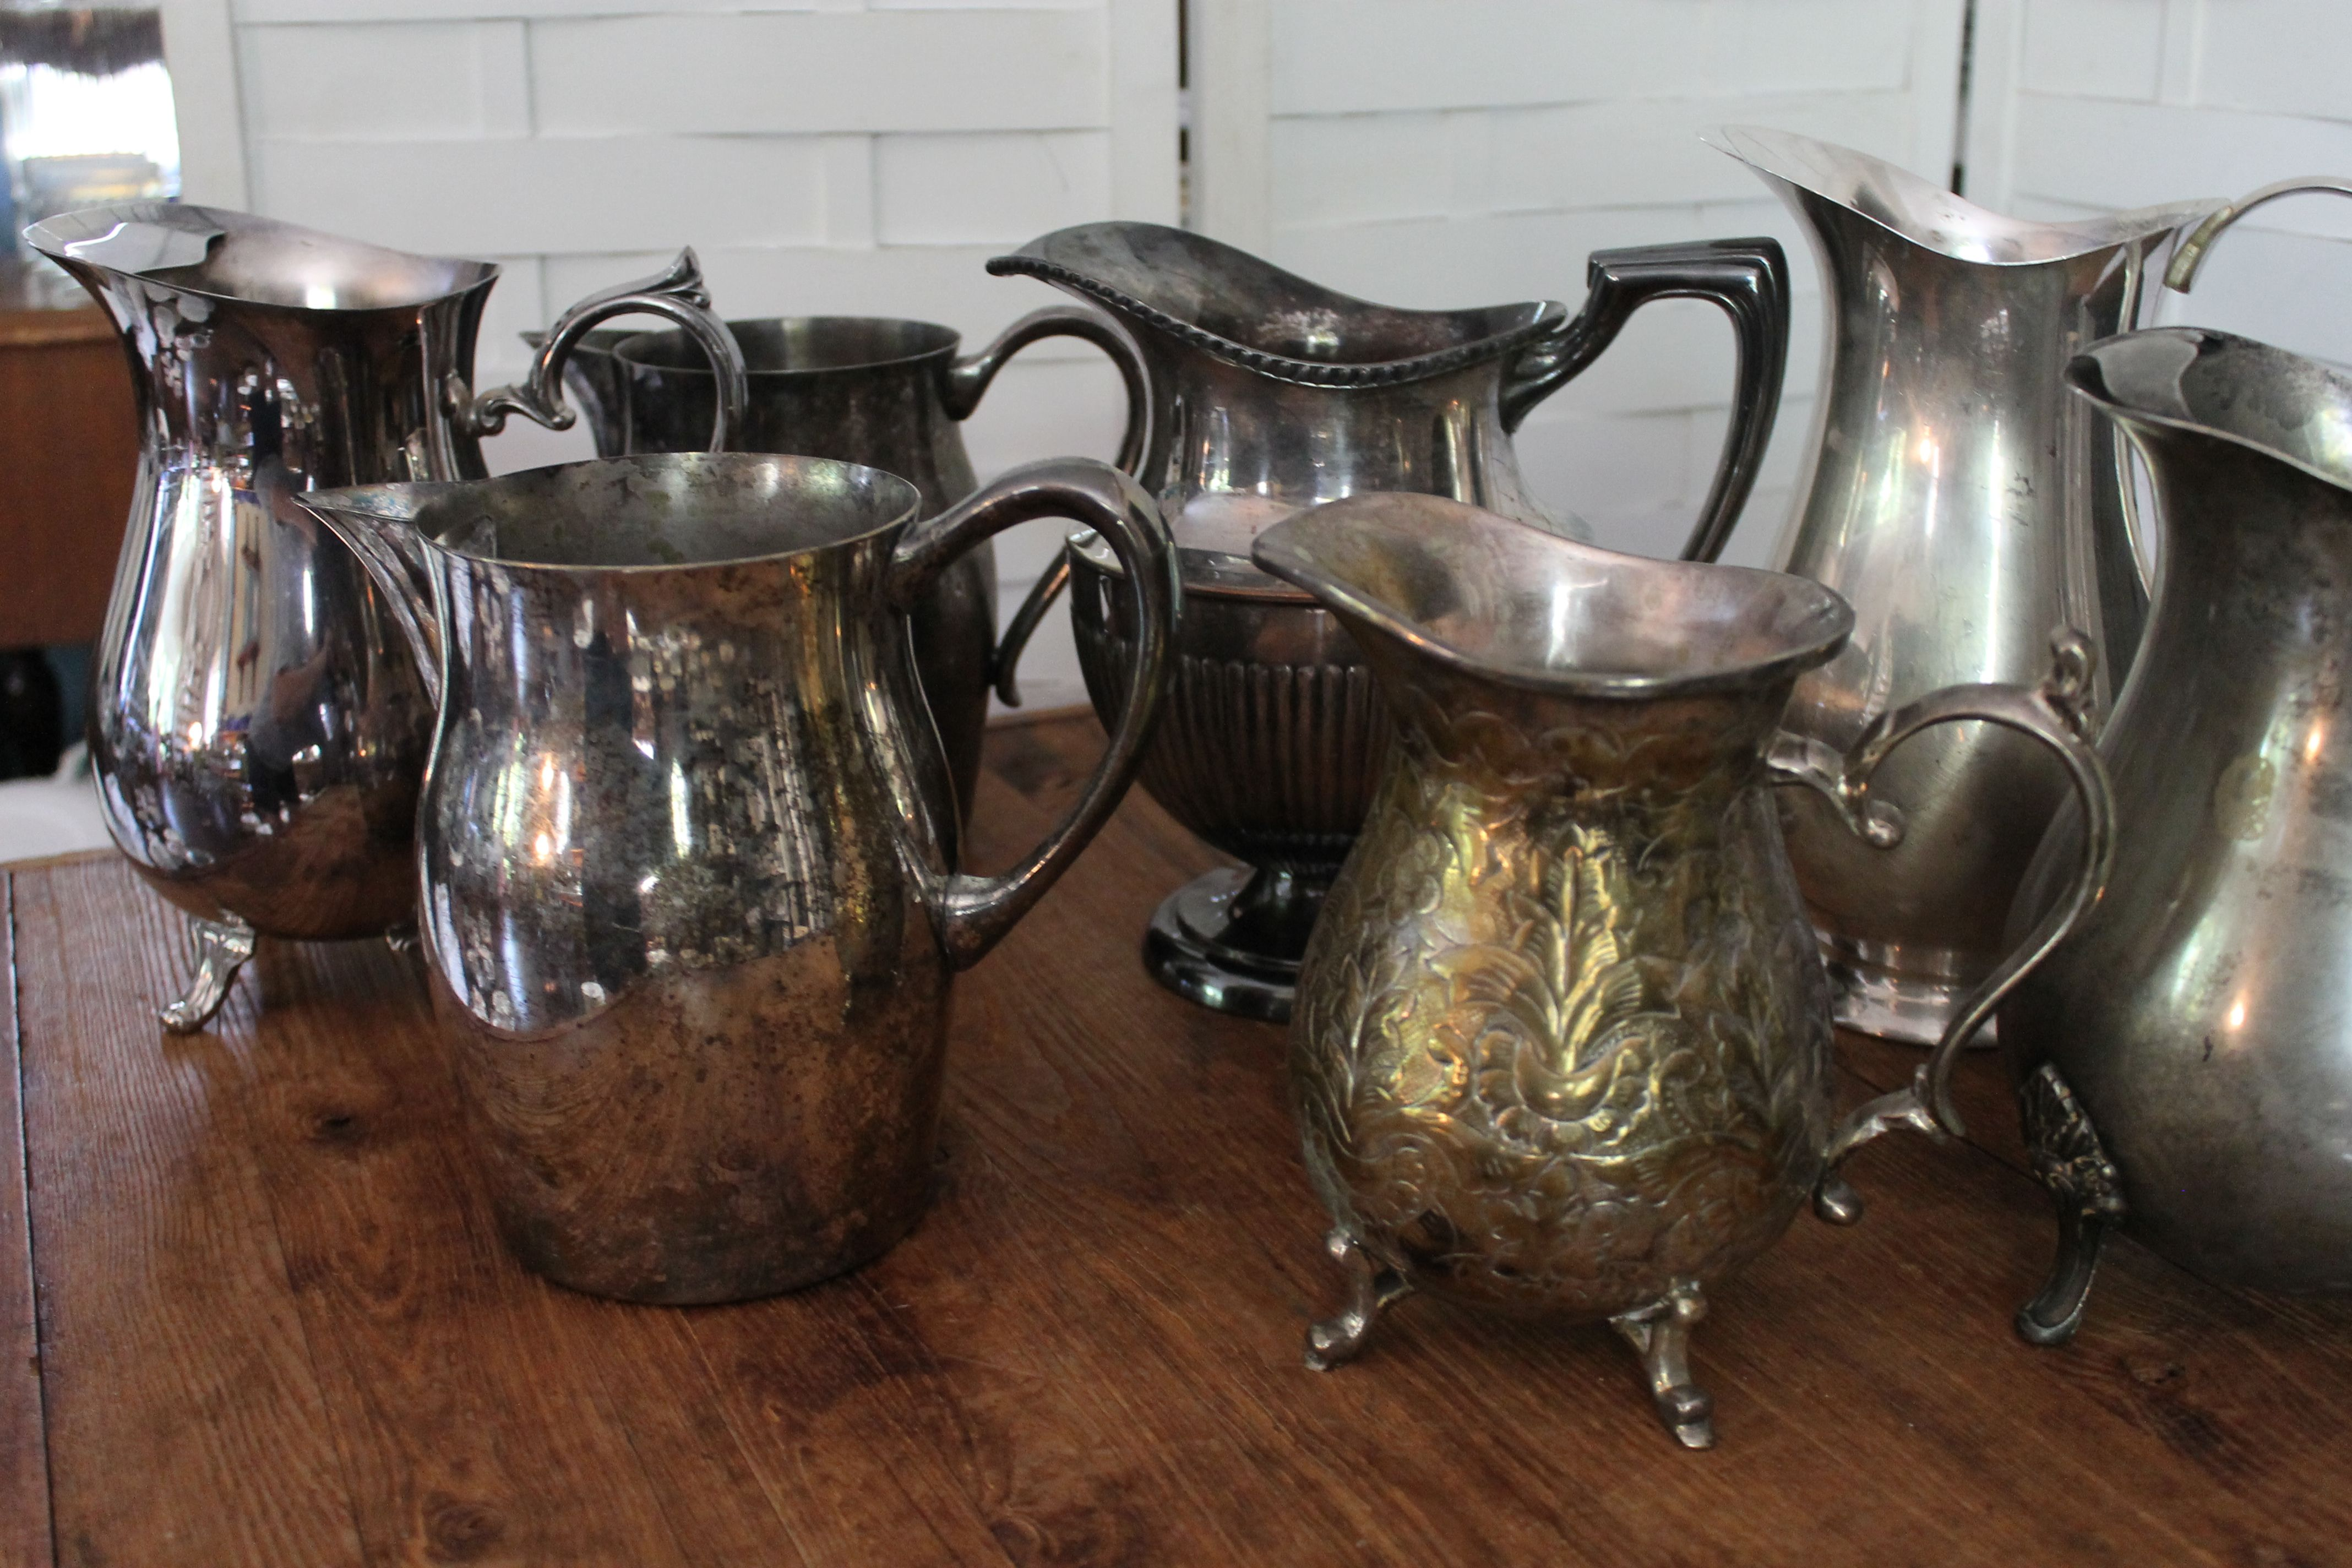 We have 8 large silver pitchers perfect for a vintage wedding or event from Southern Vintage Rental